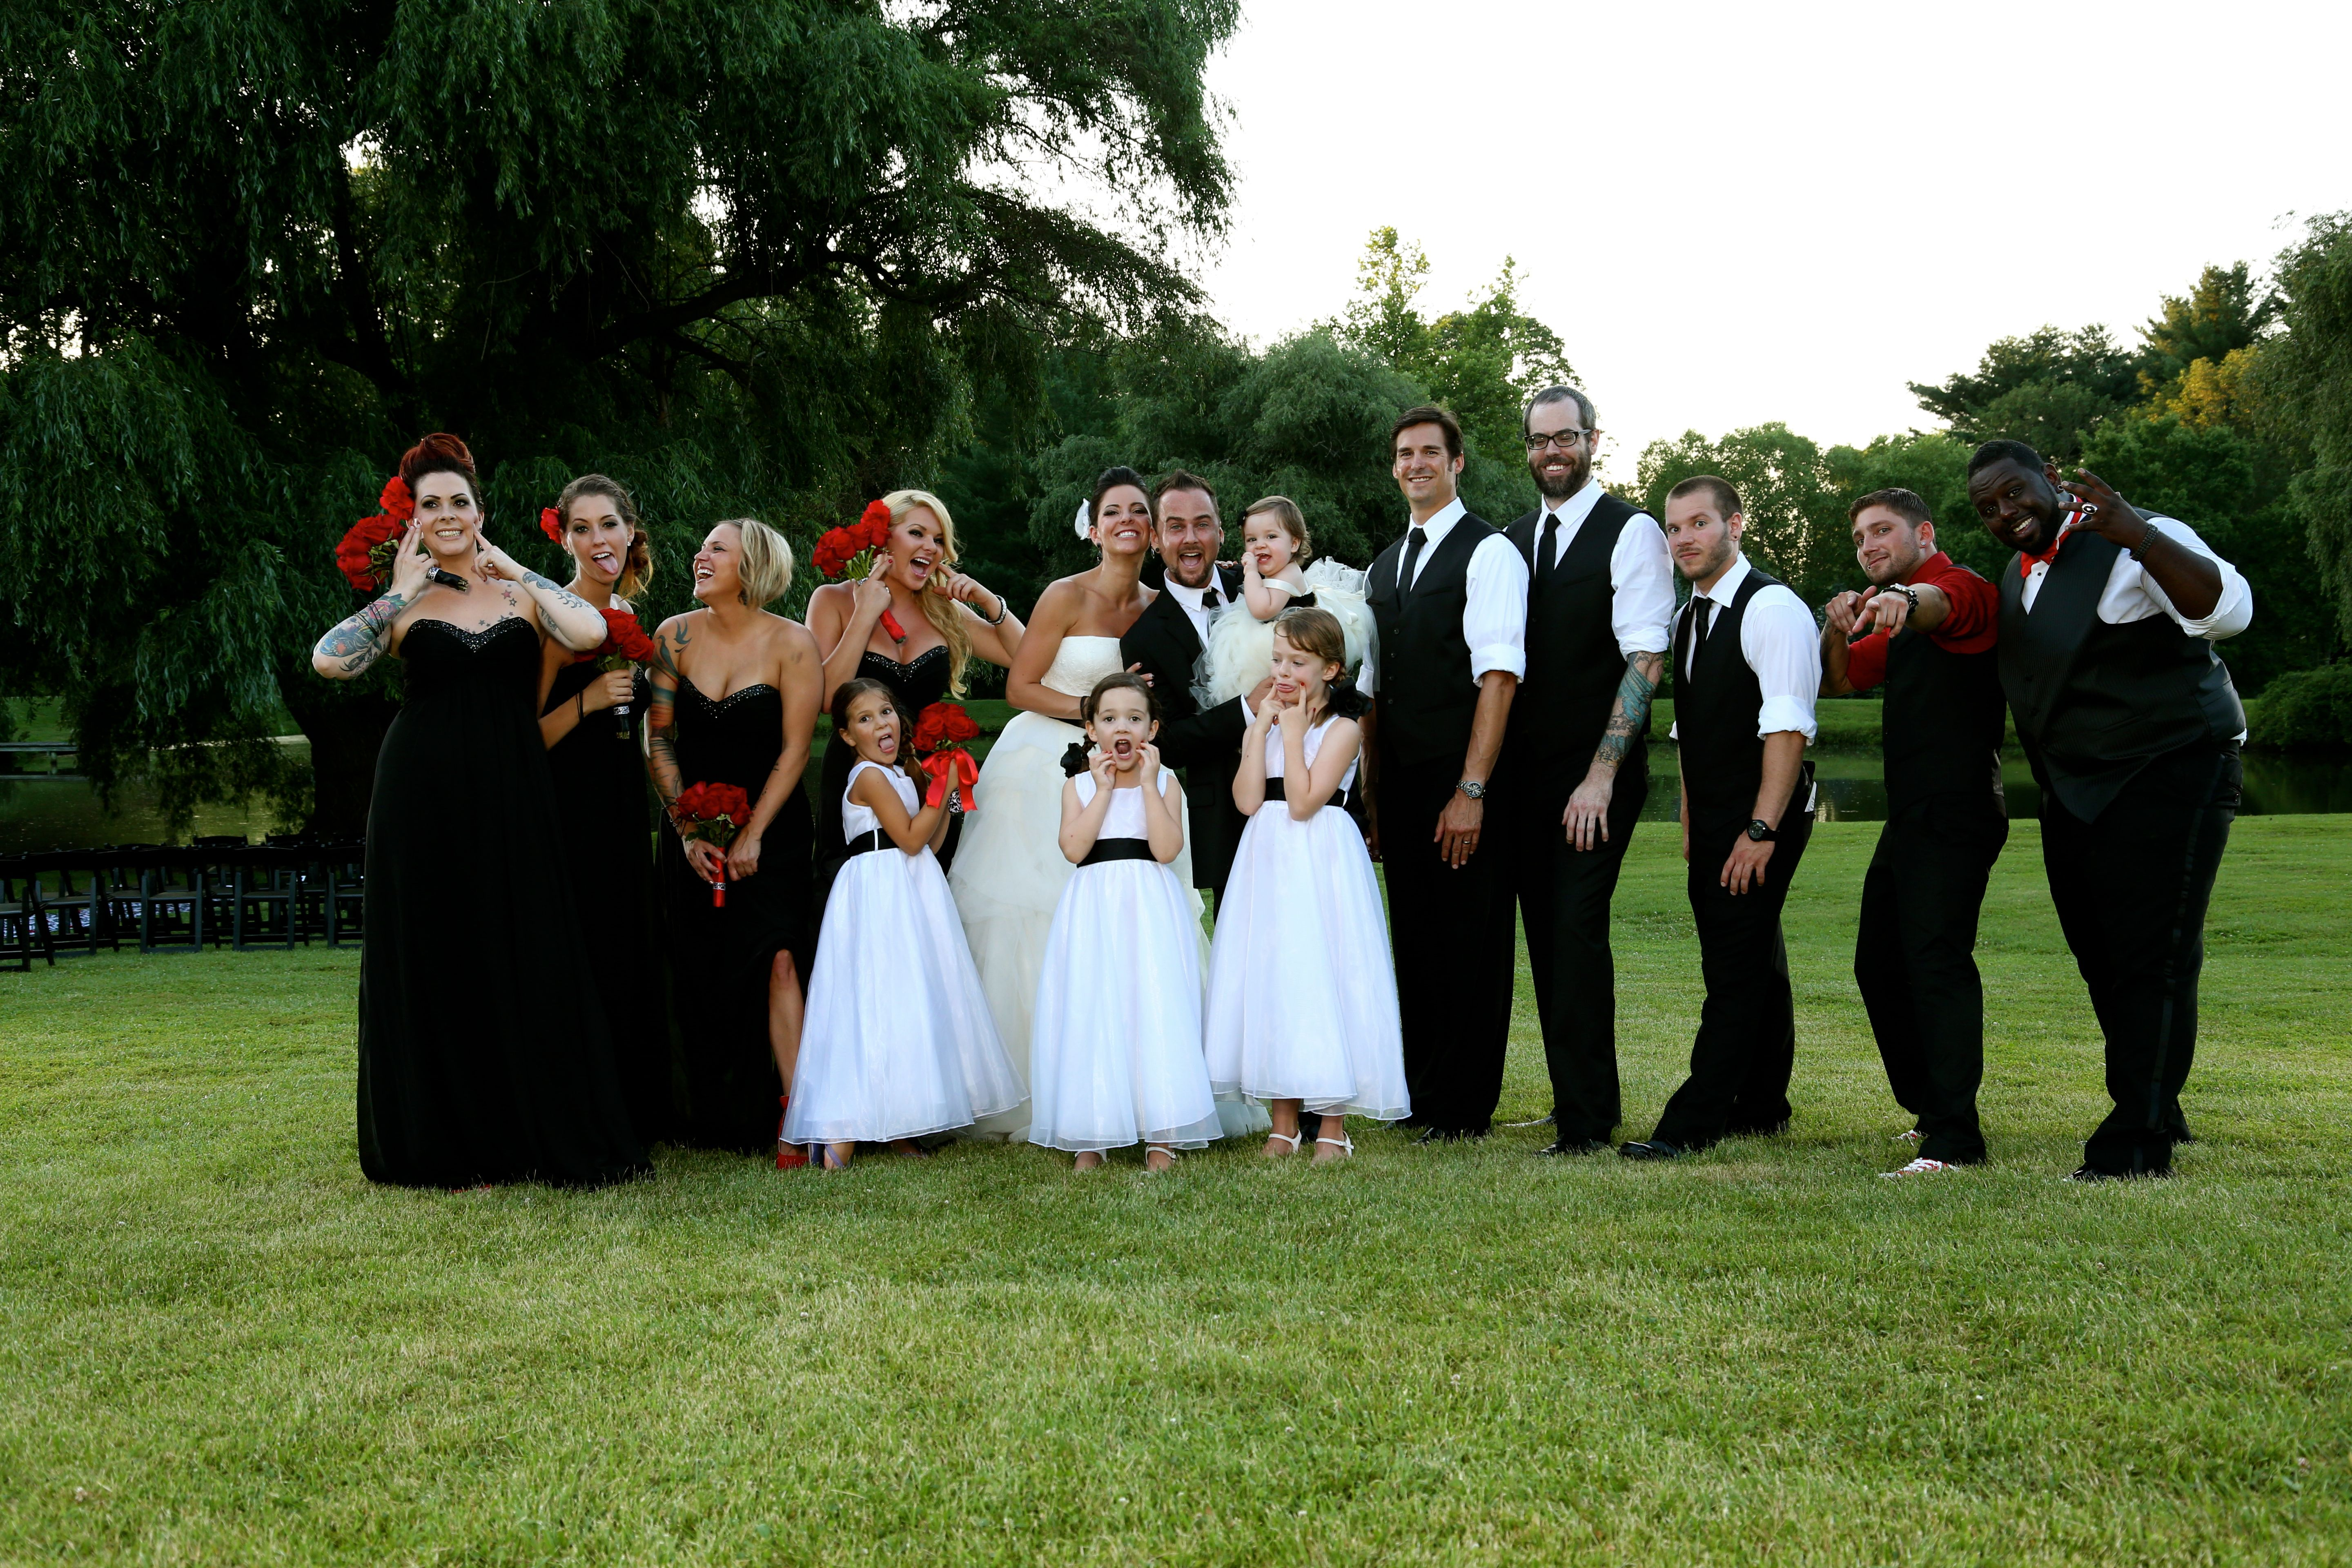 Goofy Wedding Party Red, White, And Black Wedding VW351065